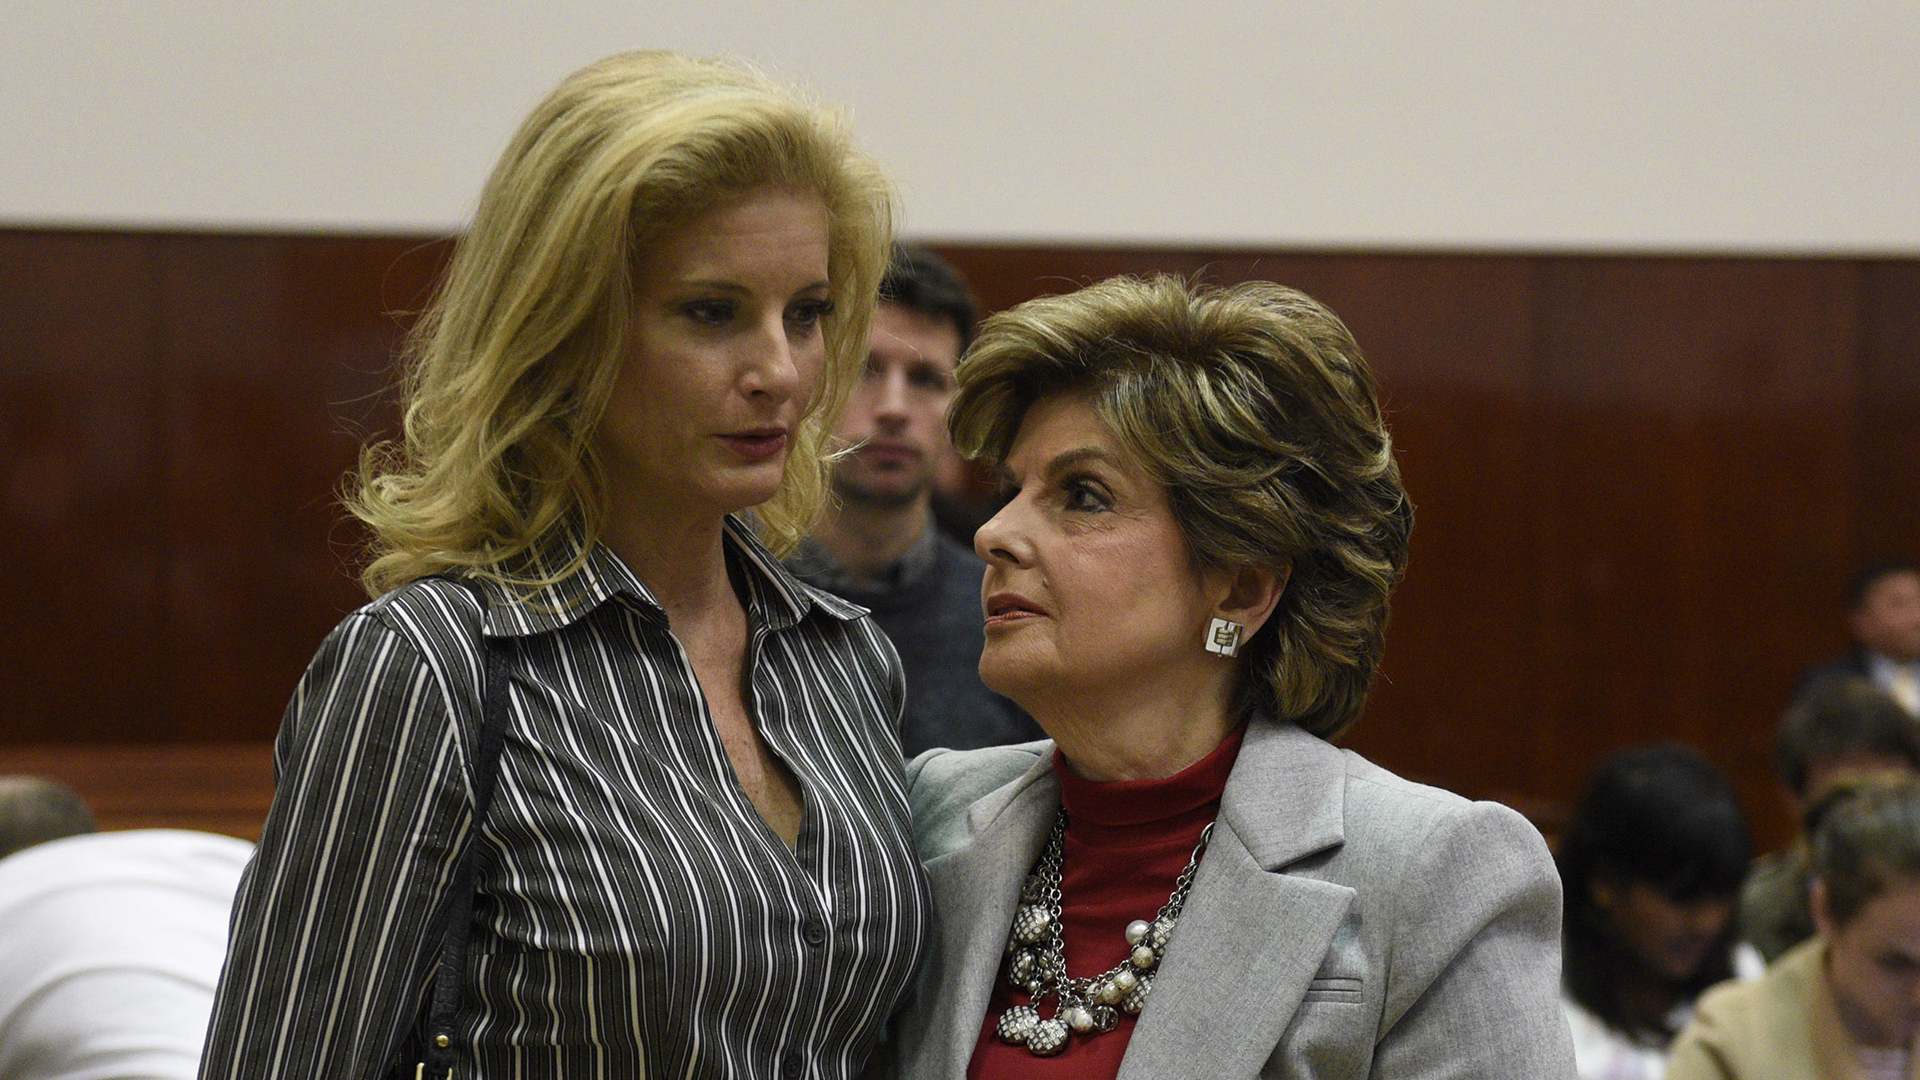 """Summer Zervos, left, a former contestant on """"The Apprentice,"""" listens to her lawyer Gloria Allred in New York County Criminal Court on Dec. 5, 2017, in New York. (Credit: BARRY WILLIAMS/AFP/Getty Images)"""